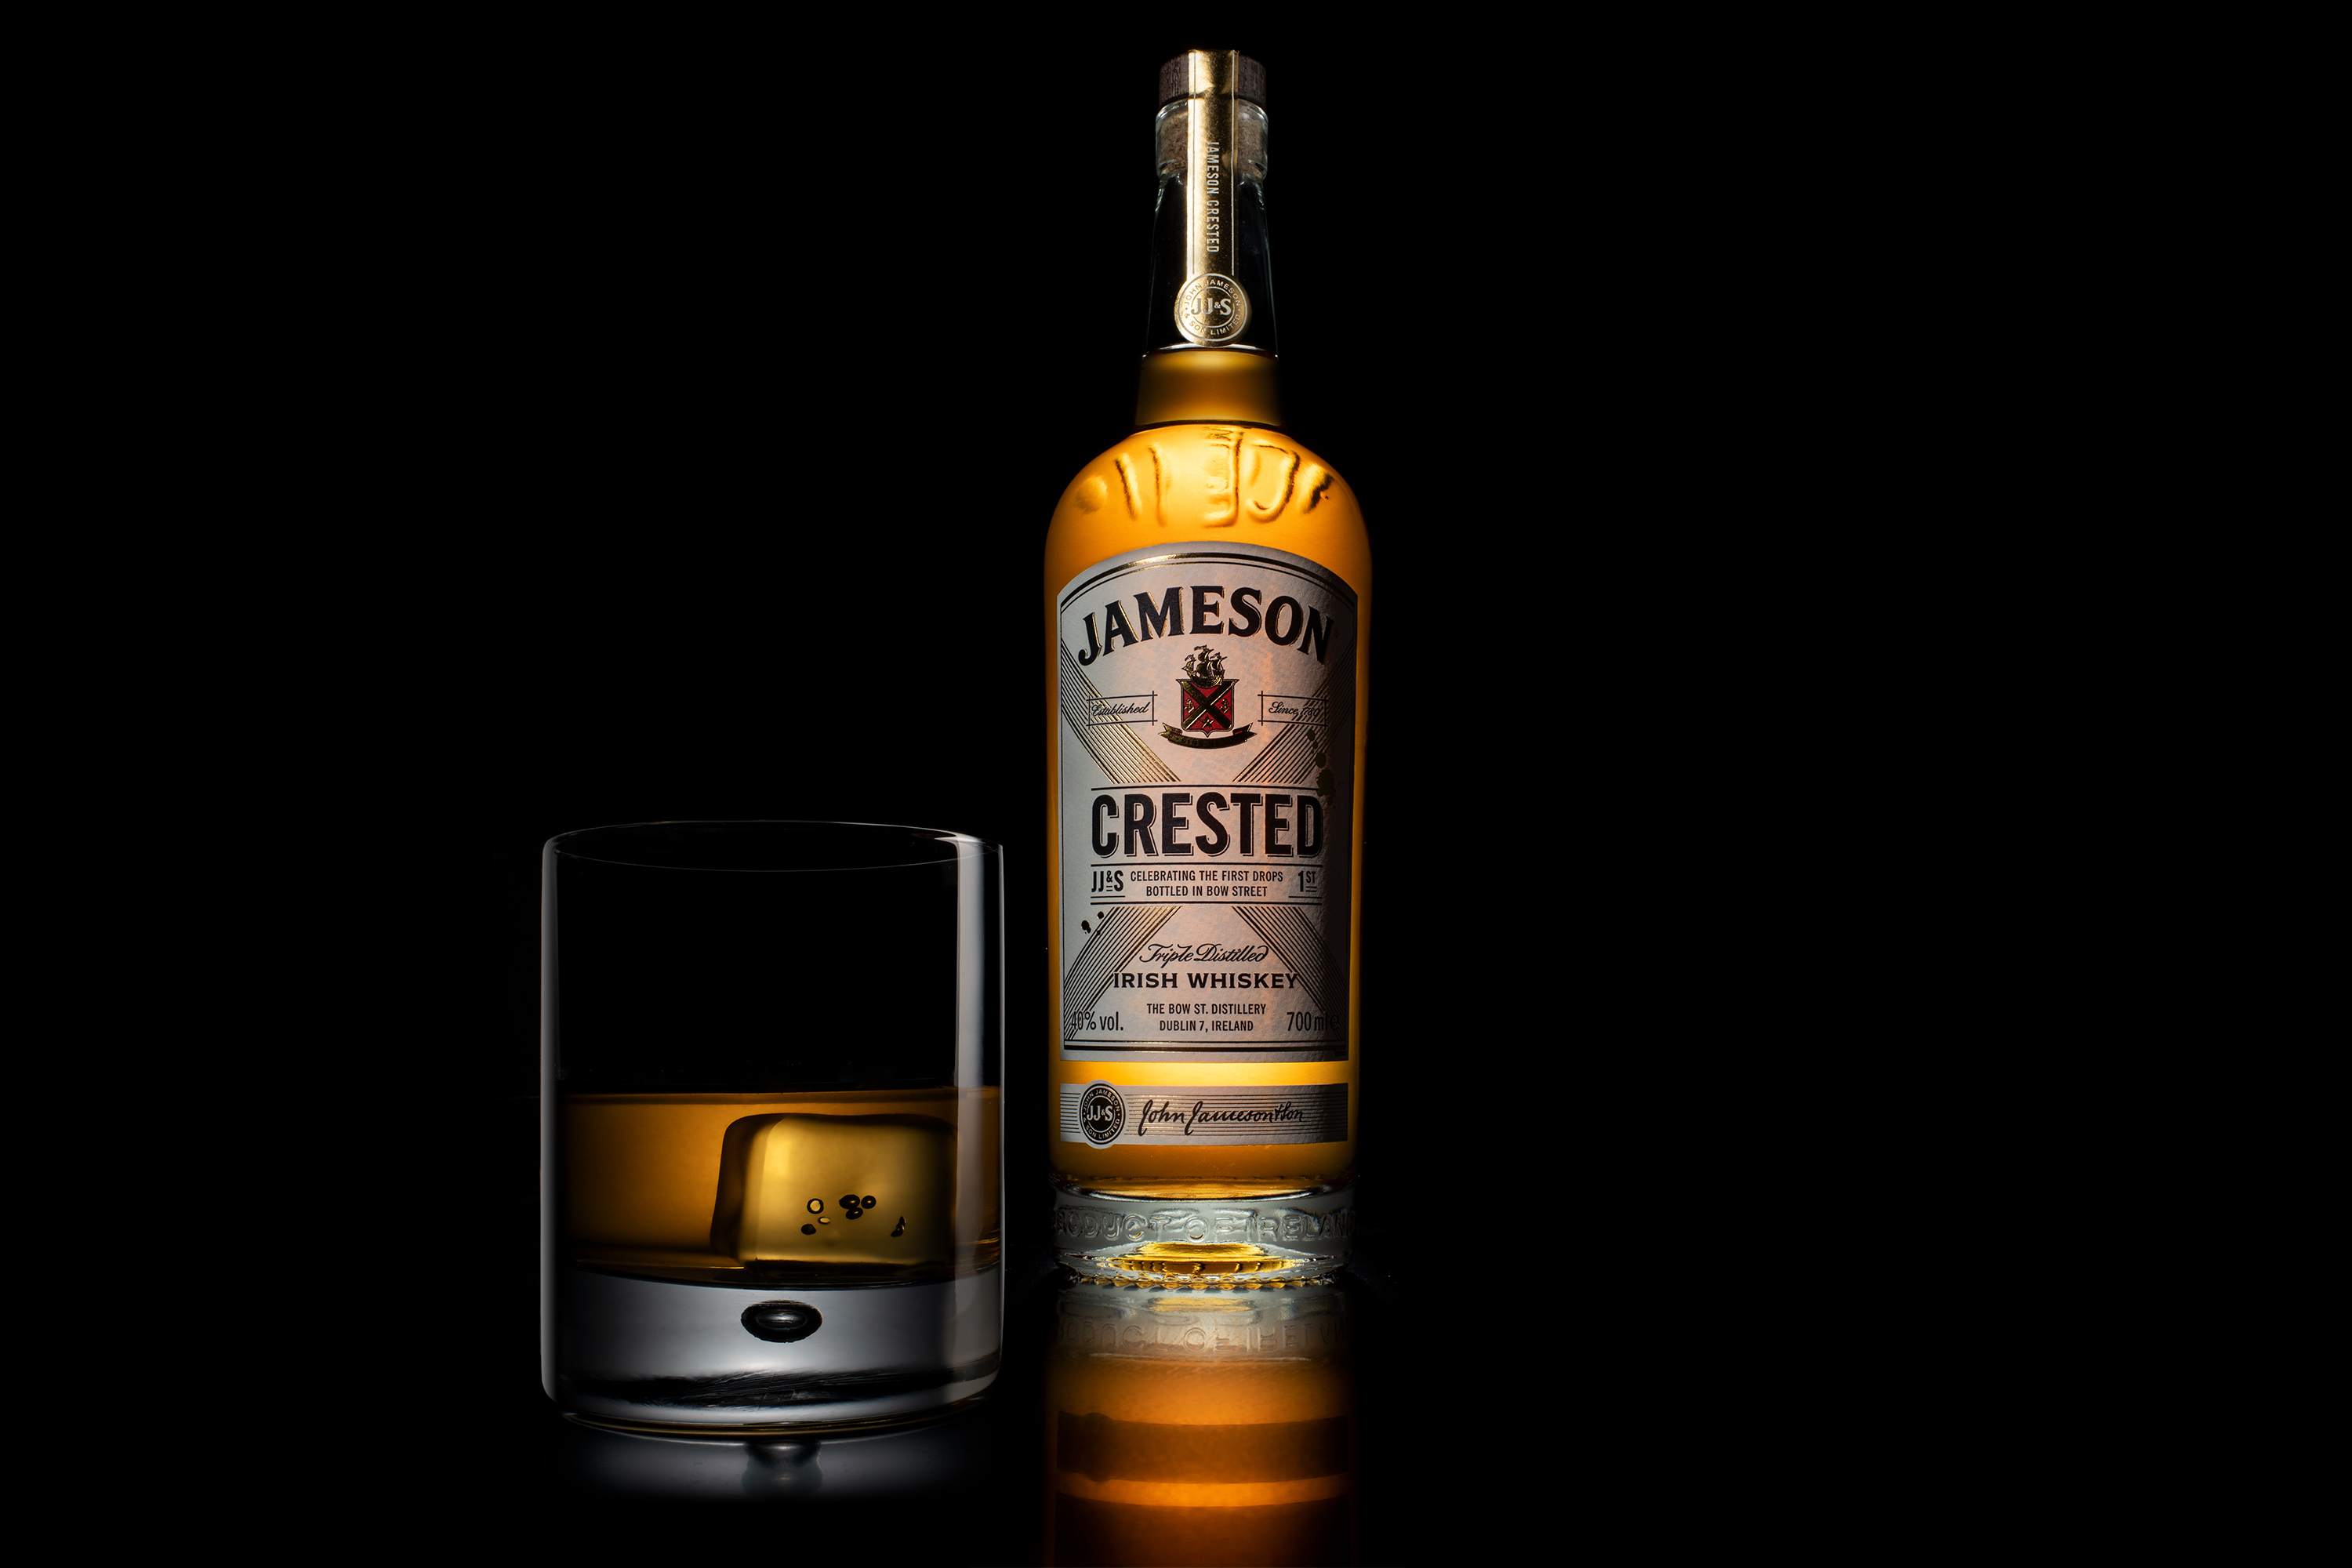 JamesonCrested